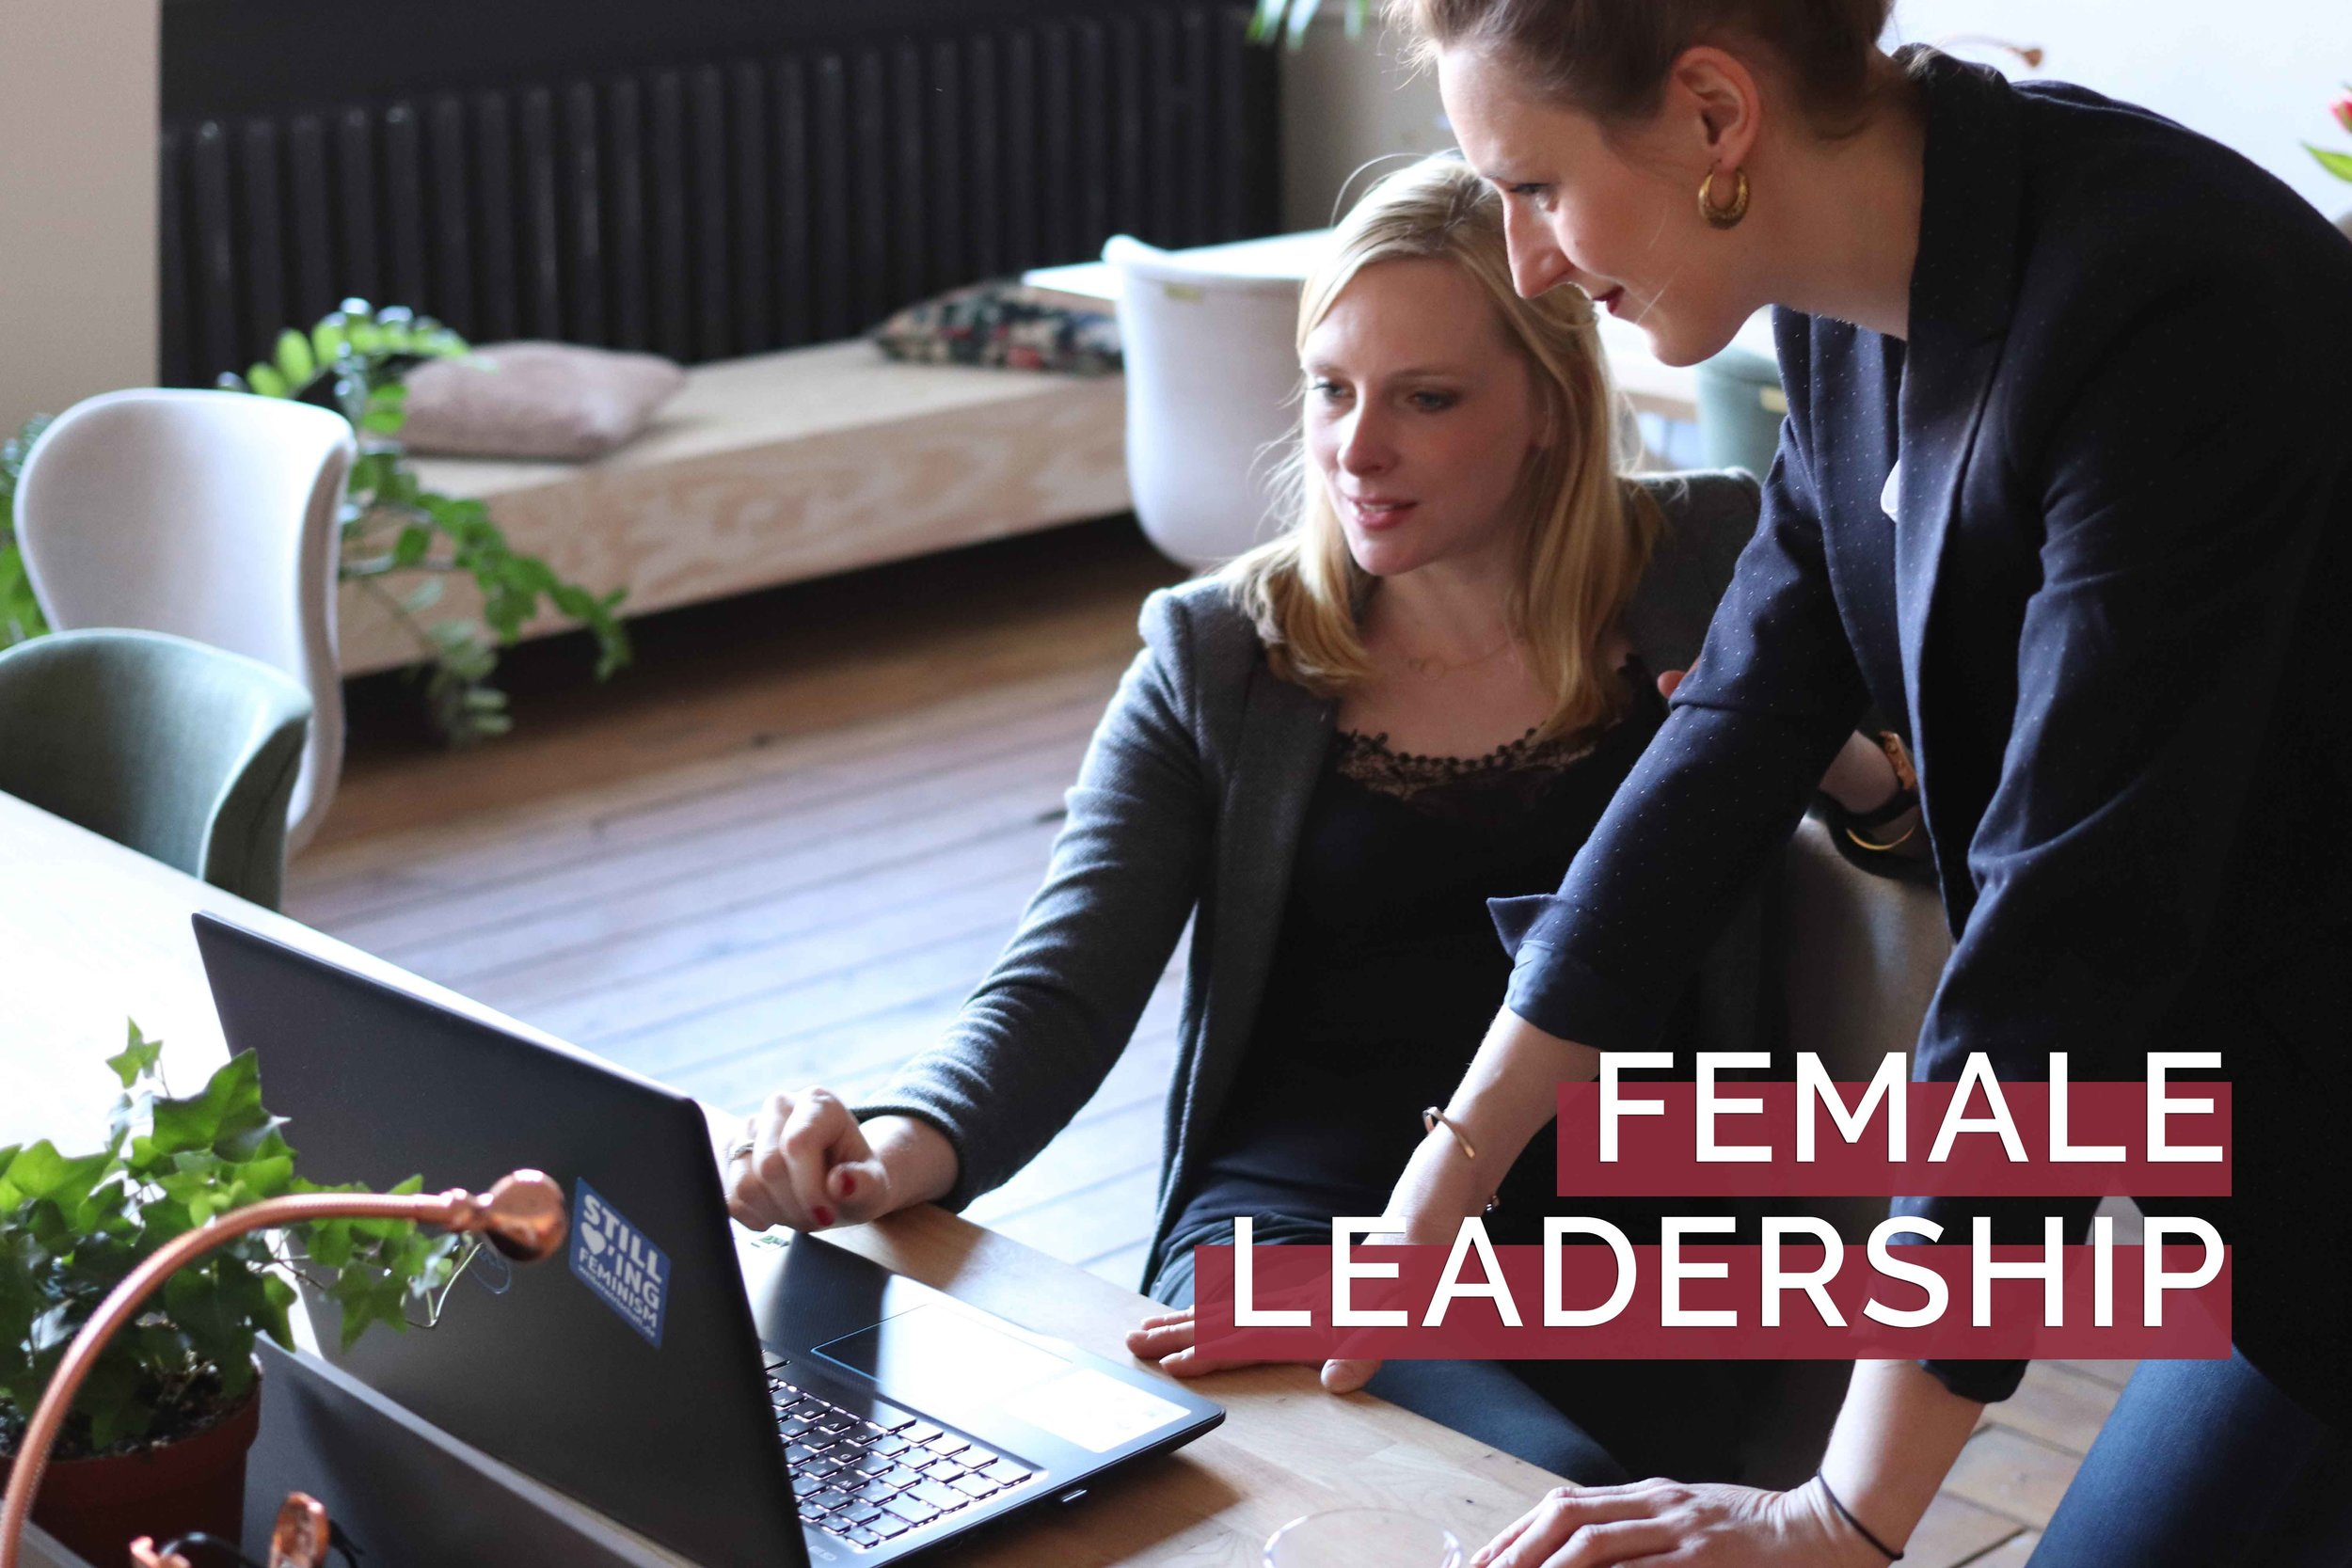 Step 2. - Co-Worker - Empowering women in workspace. Lead by Liesbeth. Year 2007. A part of know-how offered by her consultancy SHE works with wo-men © .Coaching women to take up leadership roles and introducing diversity thinking as path to innovation.